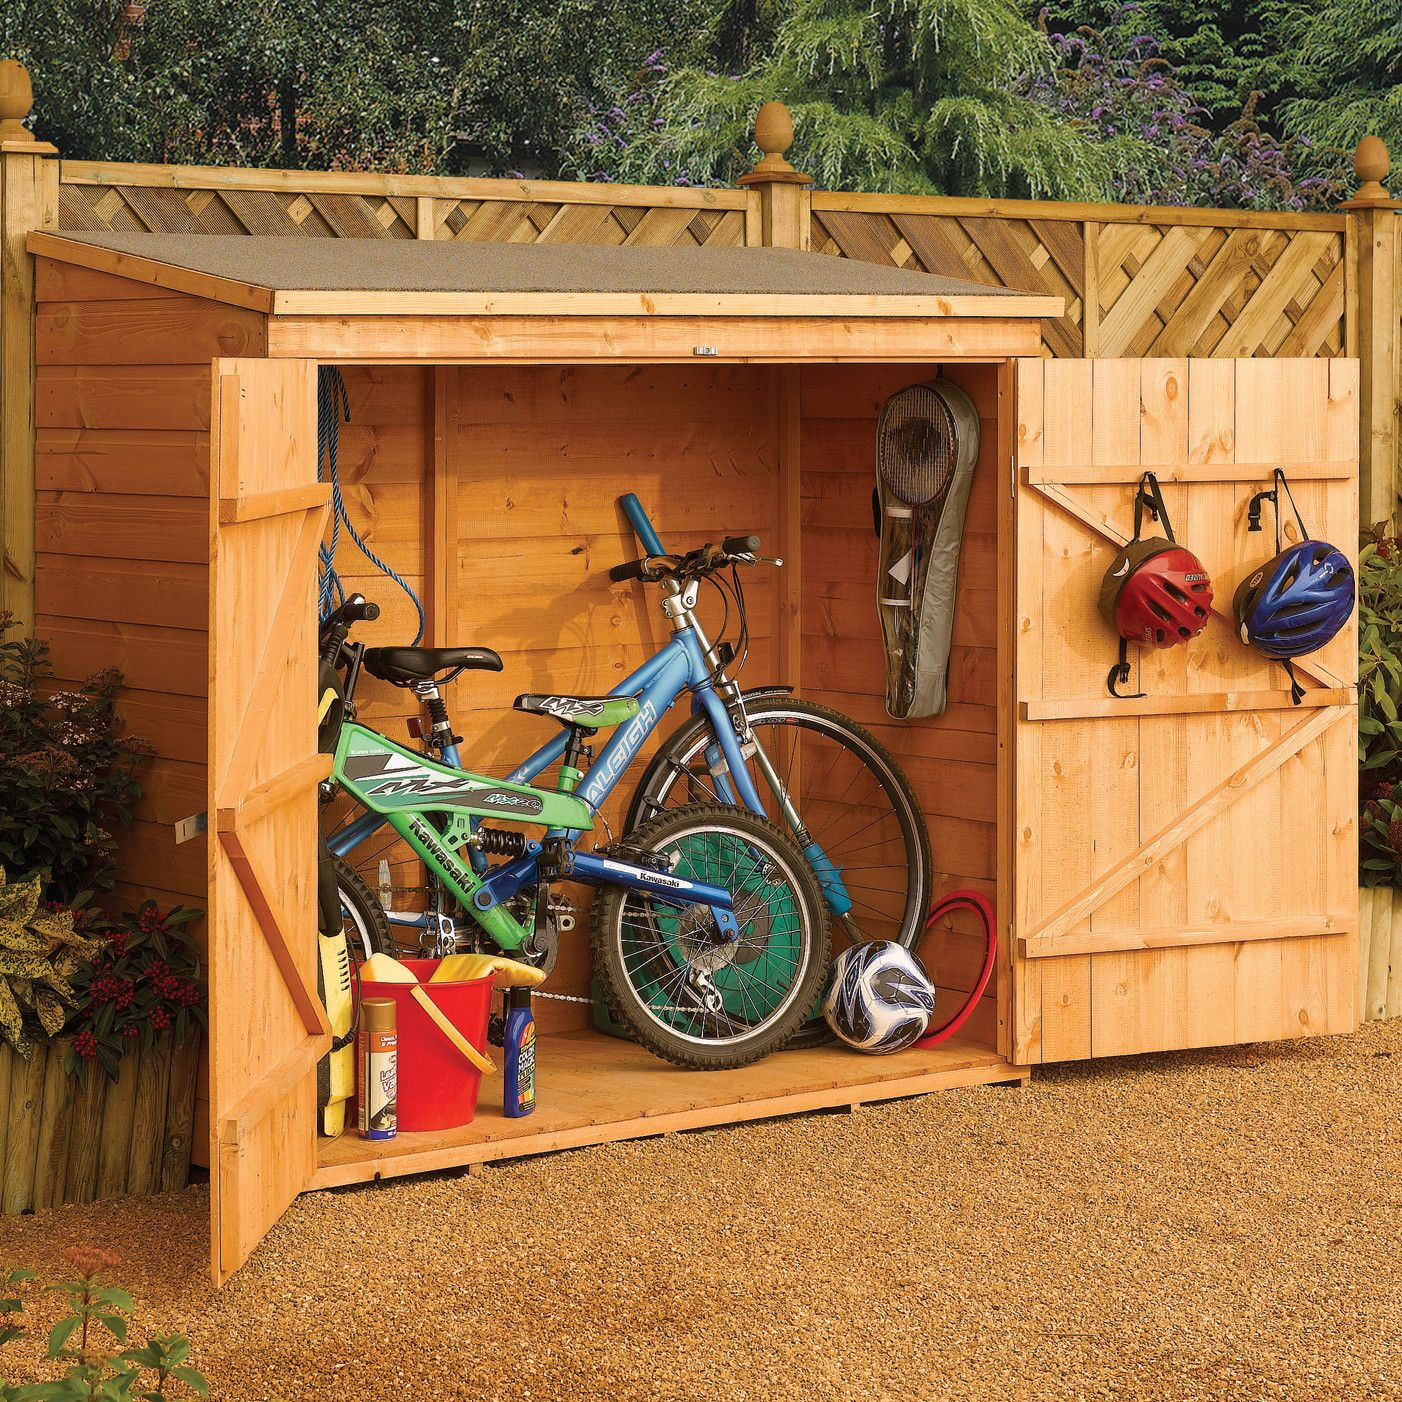 6 Ft W X 2 5 Ft D Wooden Horizontal Bike Shed Outdoor Storage